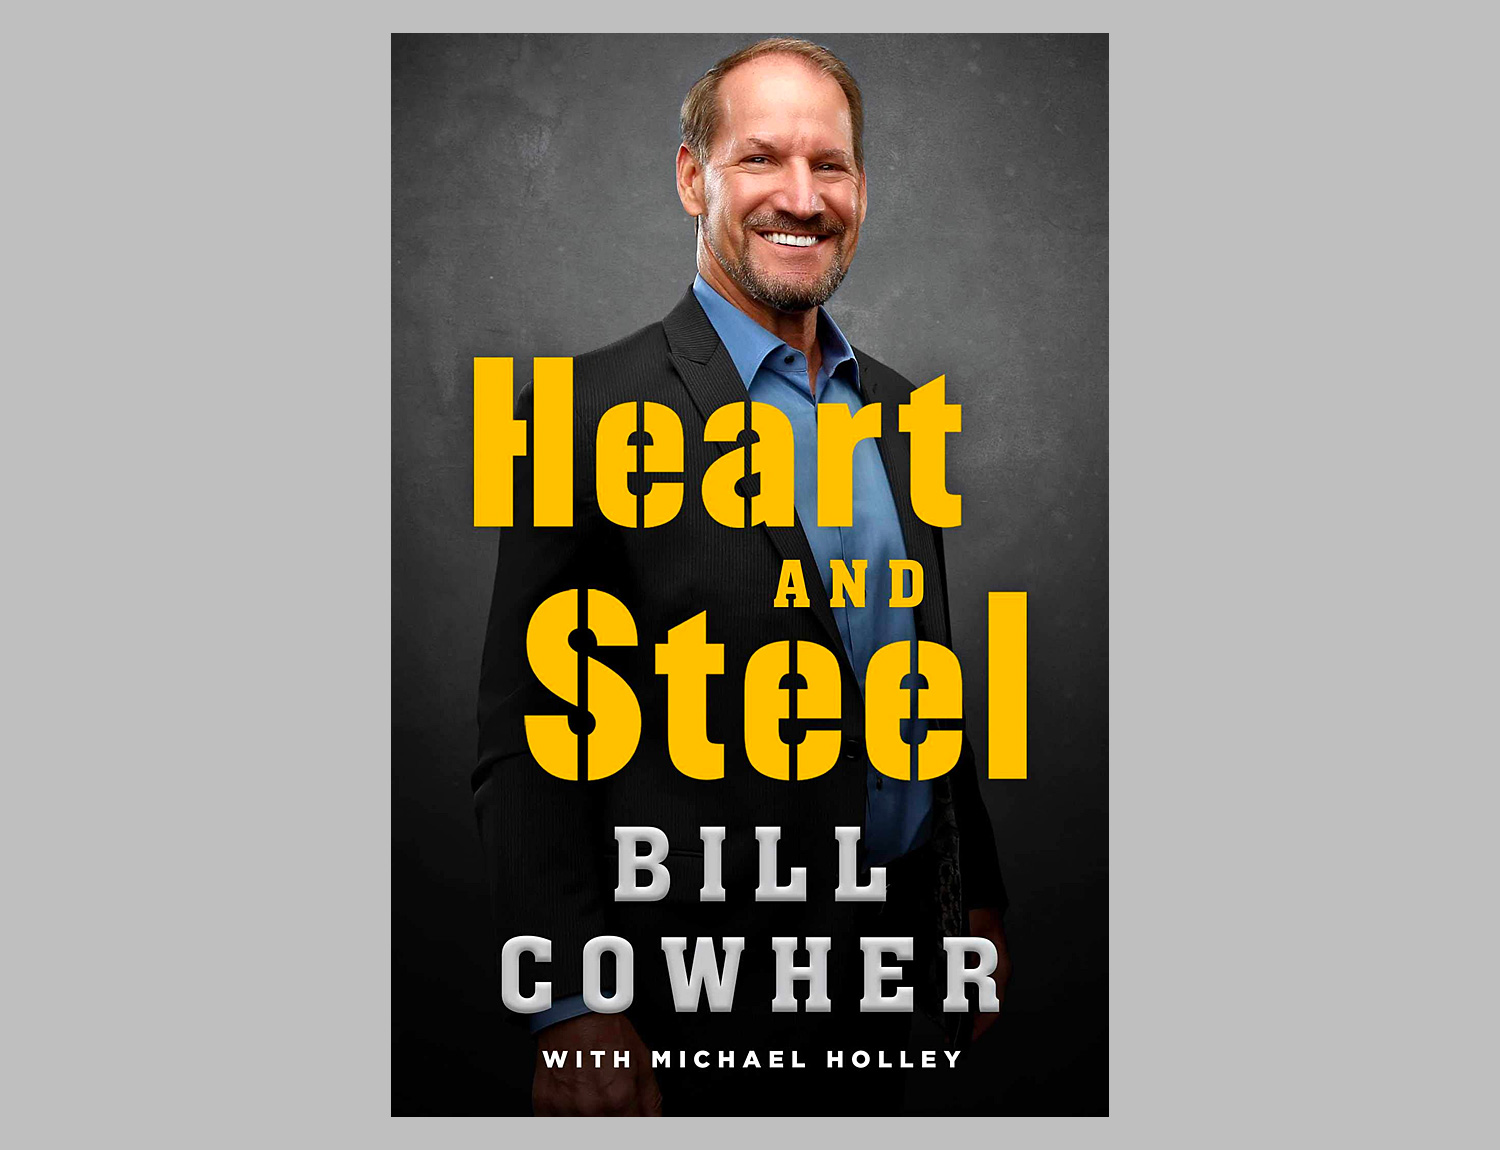 Heart and Steel: Bill Cowher's Memoir at werd.com